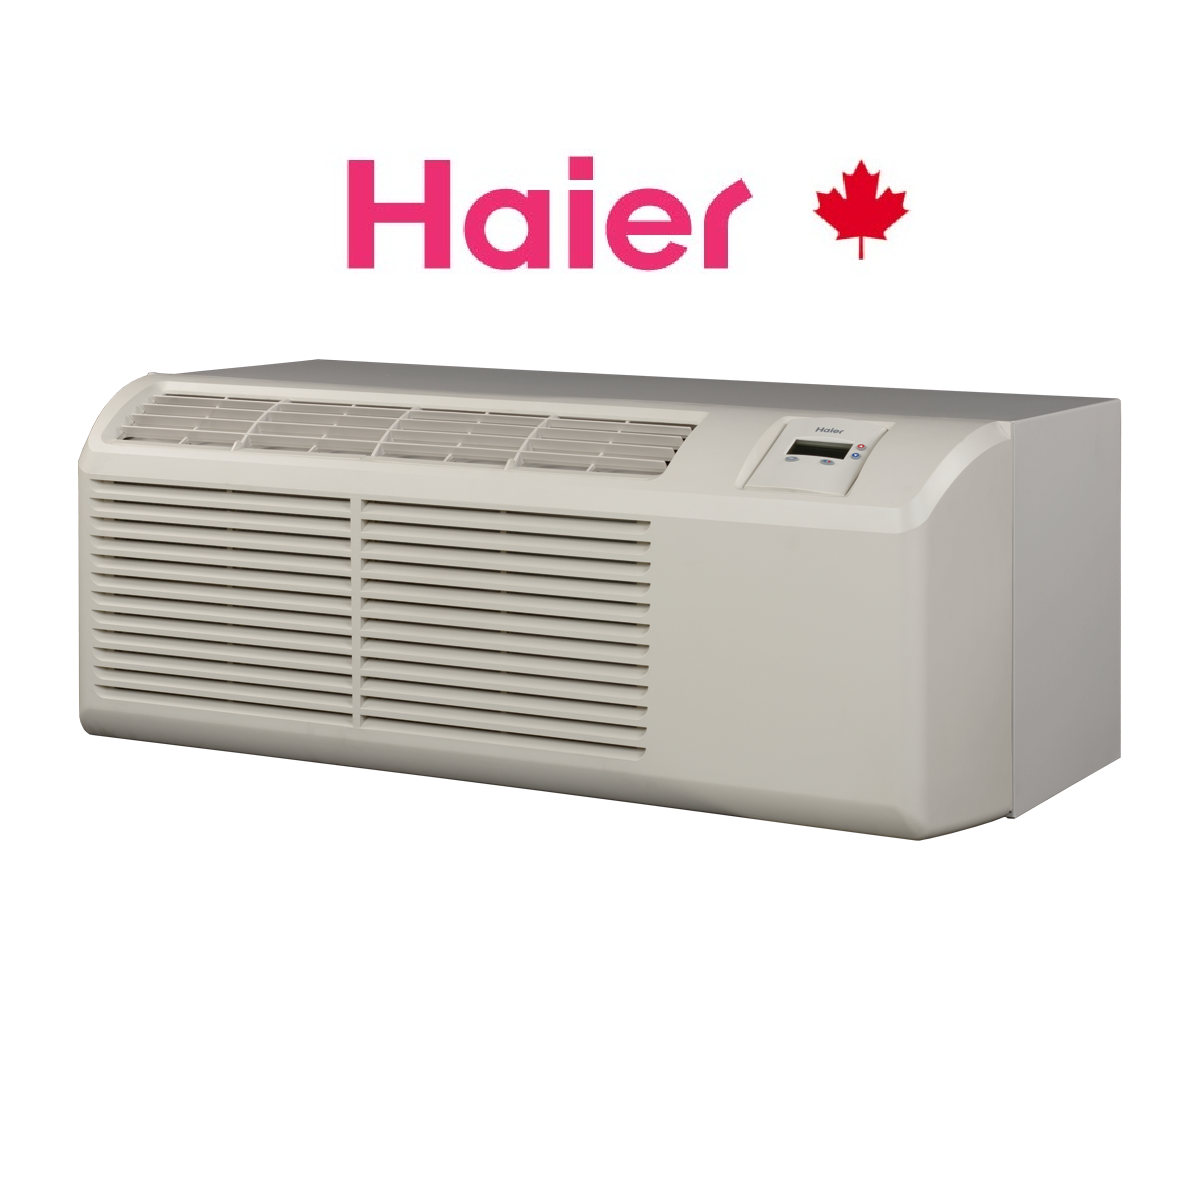 HAIER PTAC UNITS PTHH151UAC HEAT PUMP COOLING AND HEATING